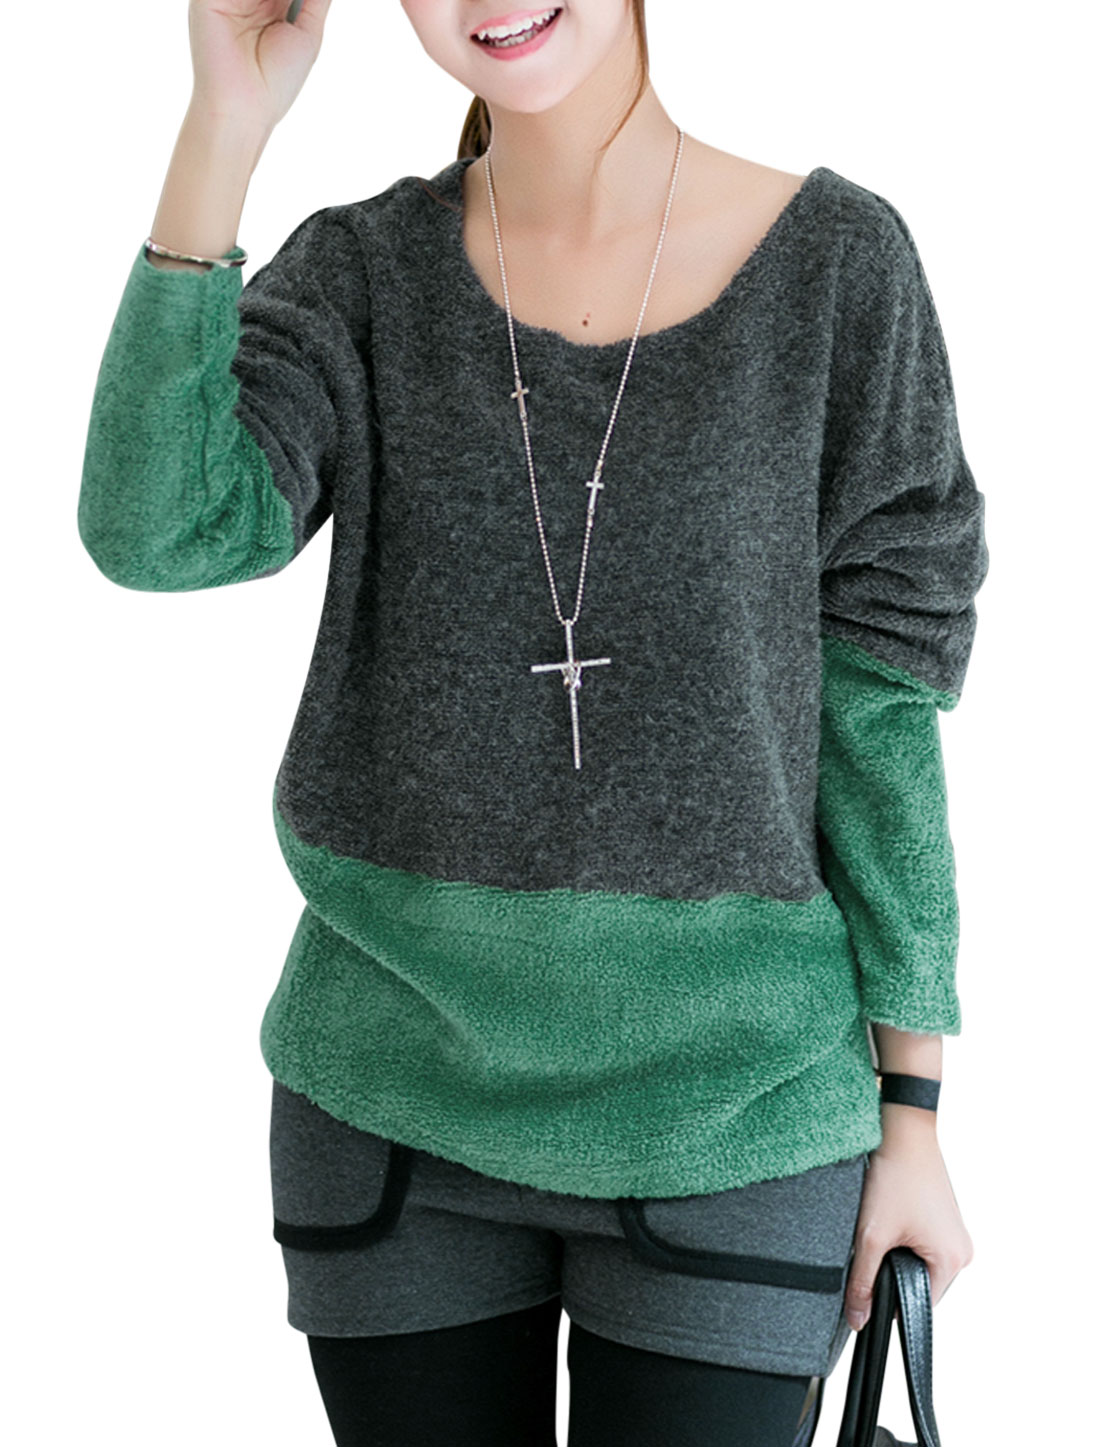 Lady Round Neck Batwing Sleeve Contrast Color Knit Shirt Green Dark Gray M